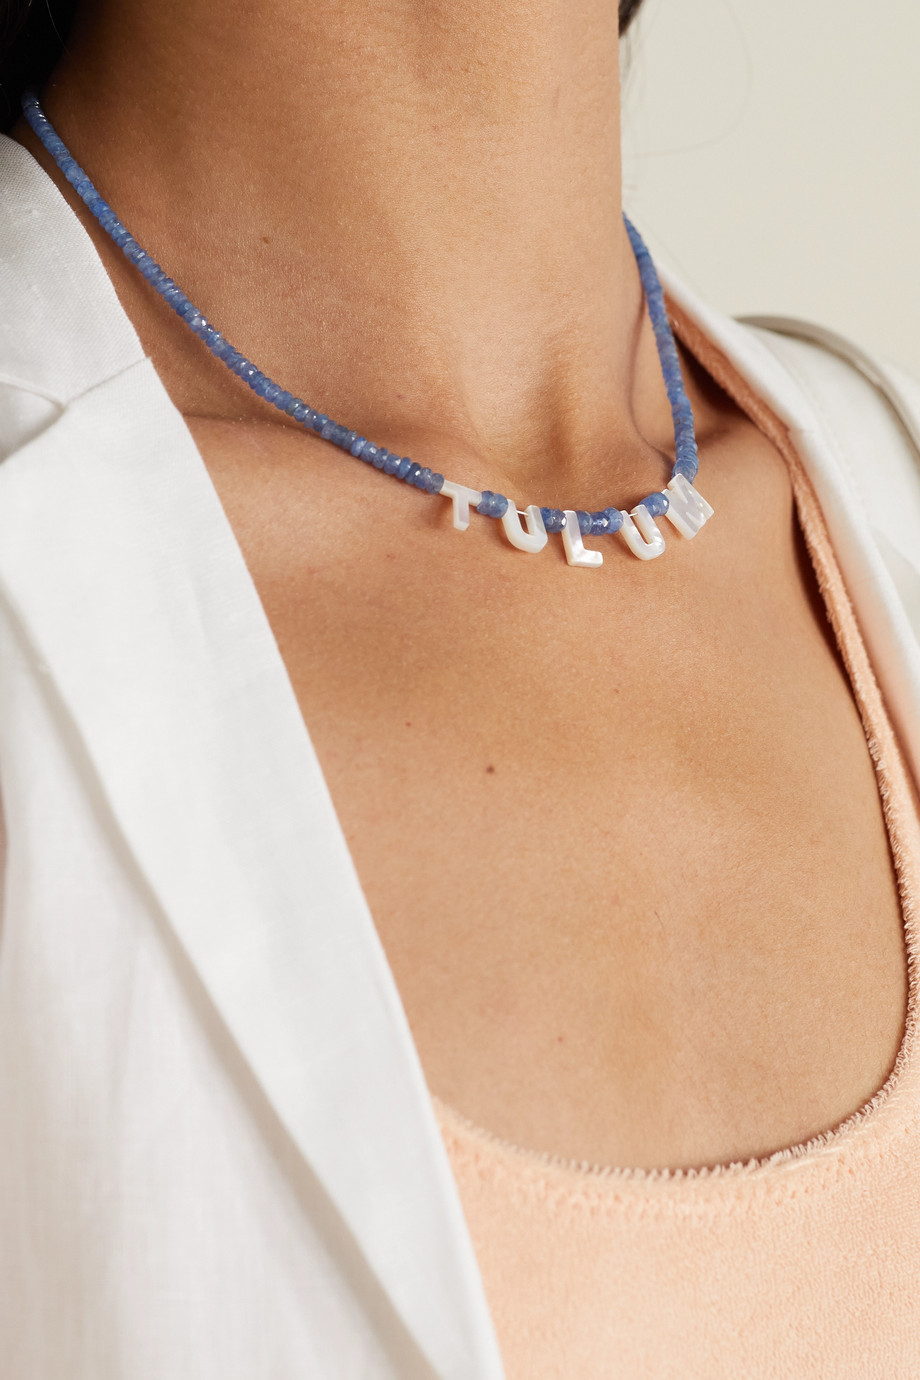 Roxanne First Tulum gold, sapphire and mother-of-pearl necklace